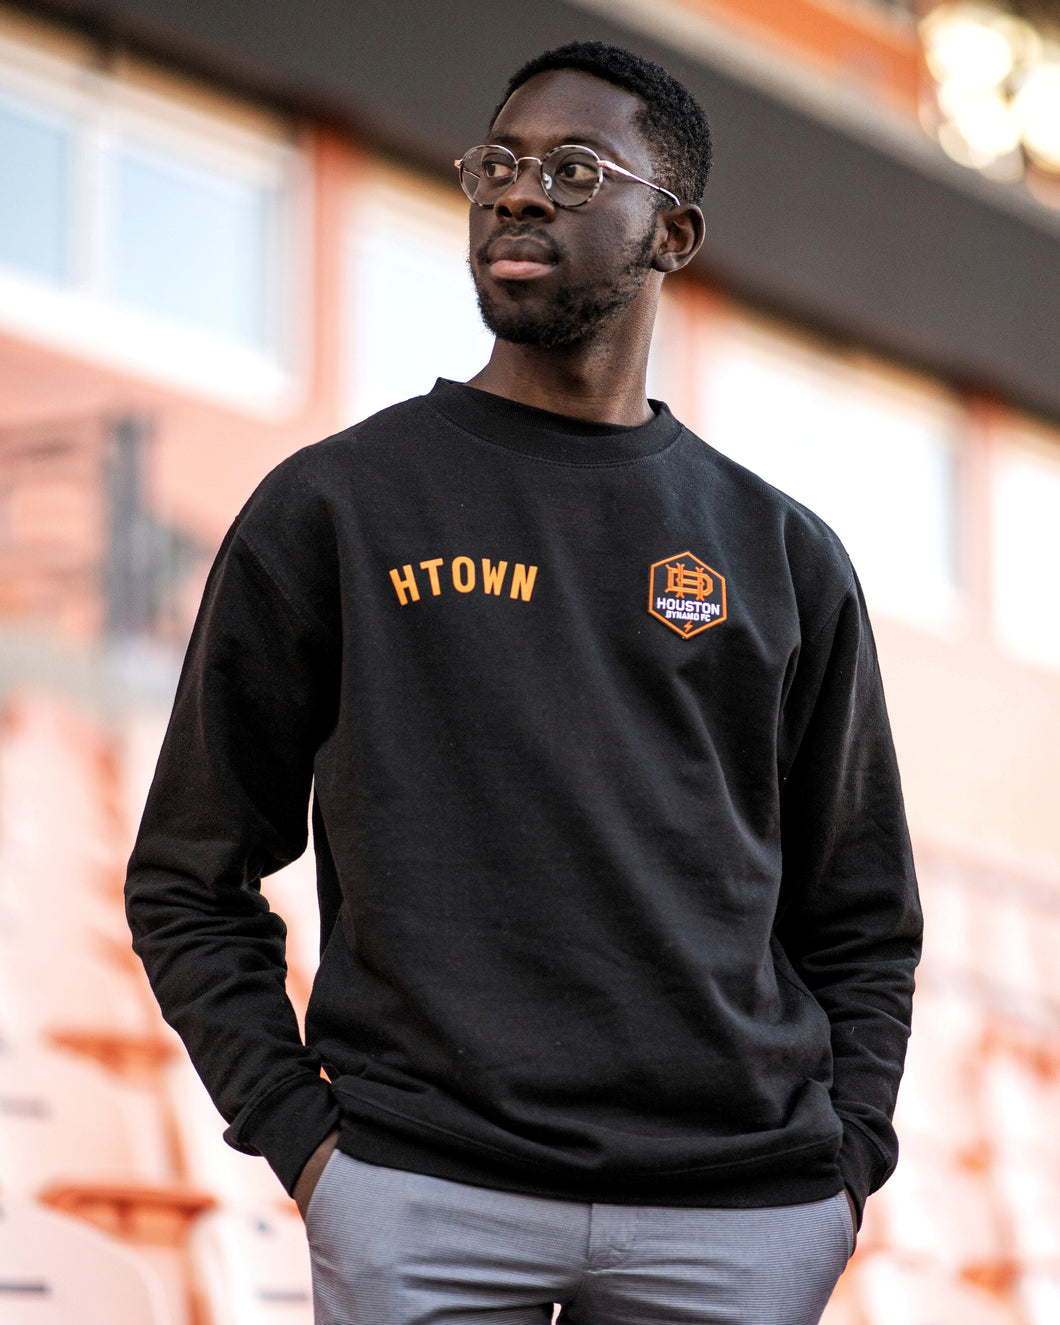 The Sam & Davy & Houston Dynamo Crewneck (Unisex Black)